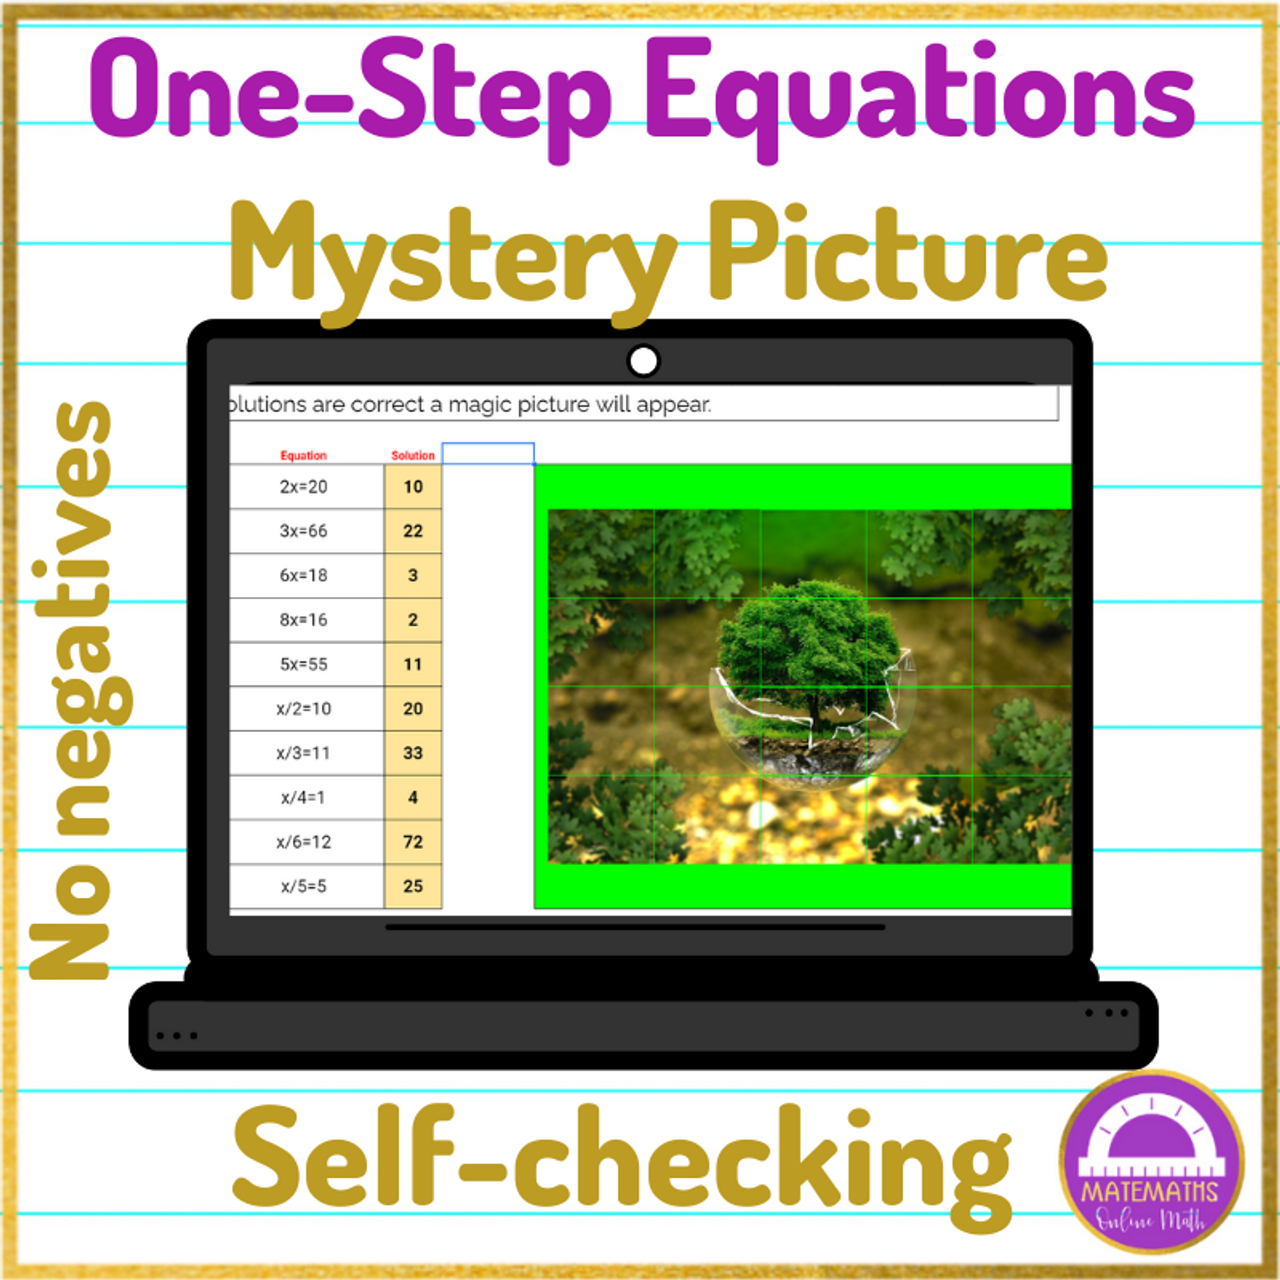 Earth Day Solving One Step Equations Pixel art Activity No Negatives